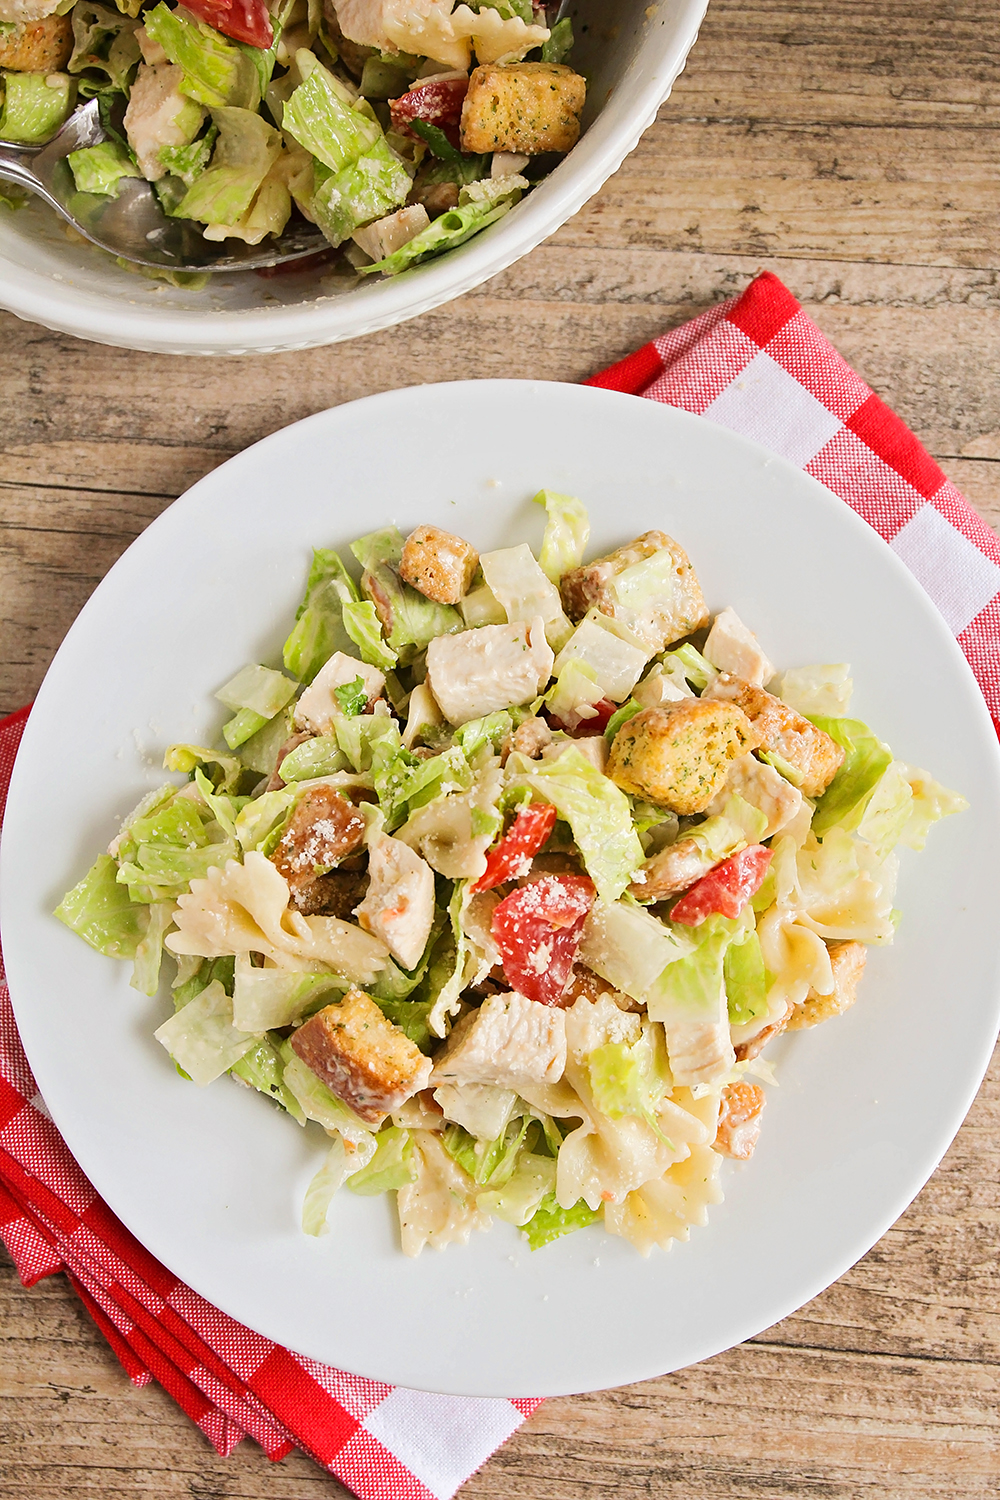 This delicious and zesty chicken caesar pasta salad is quick and easy to make, and perfect for a light summer meal!